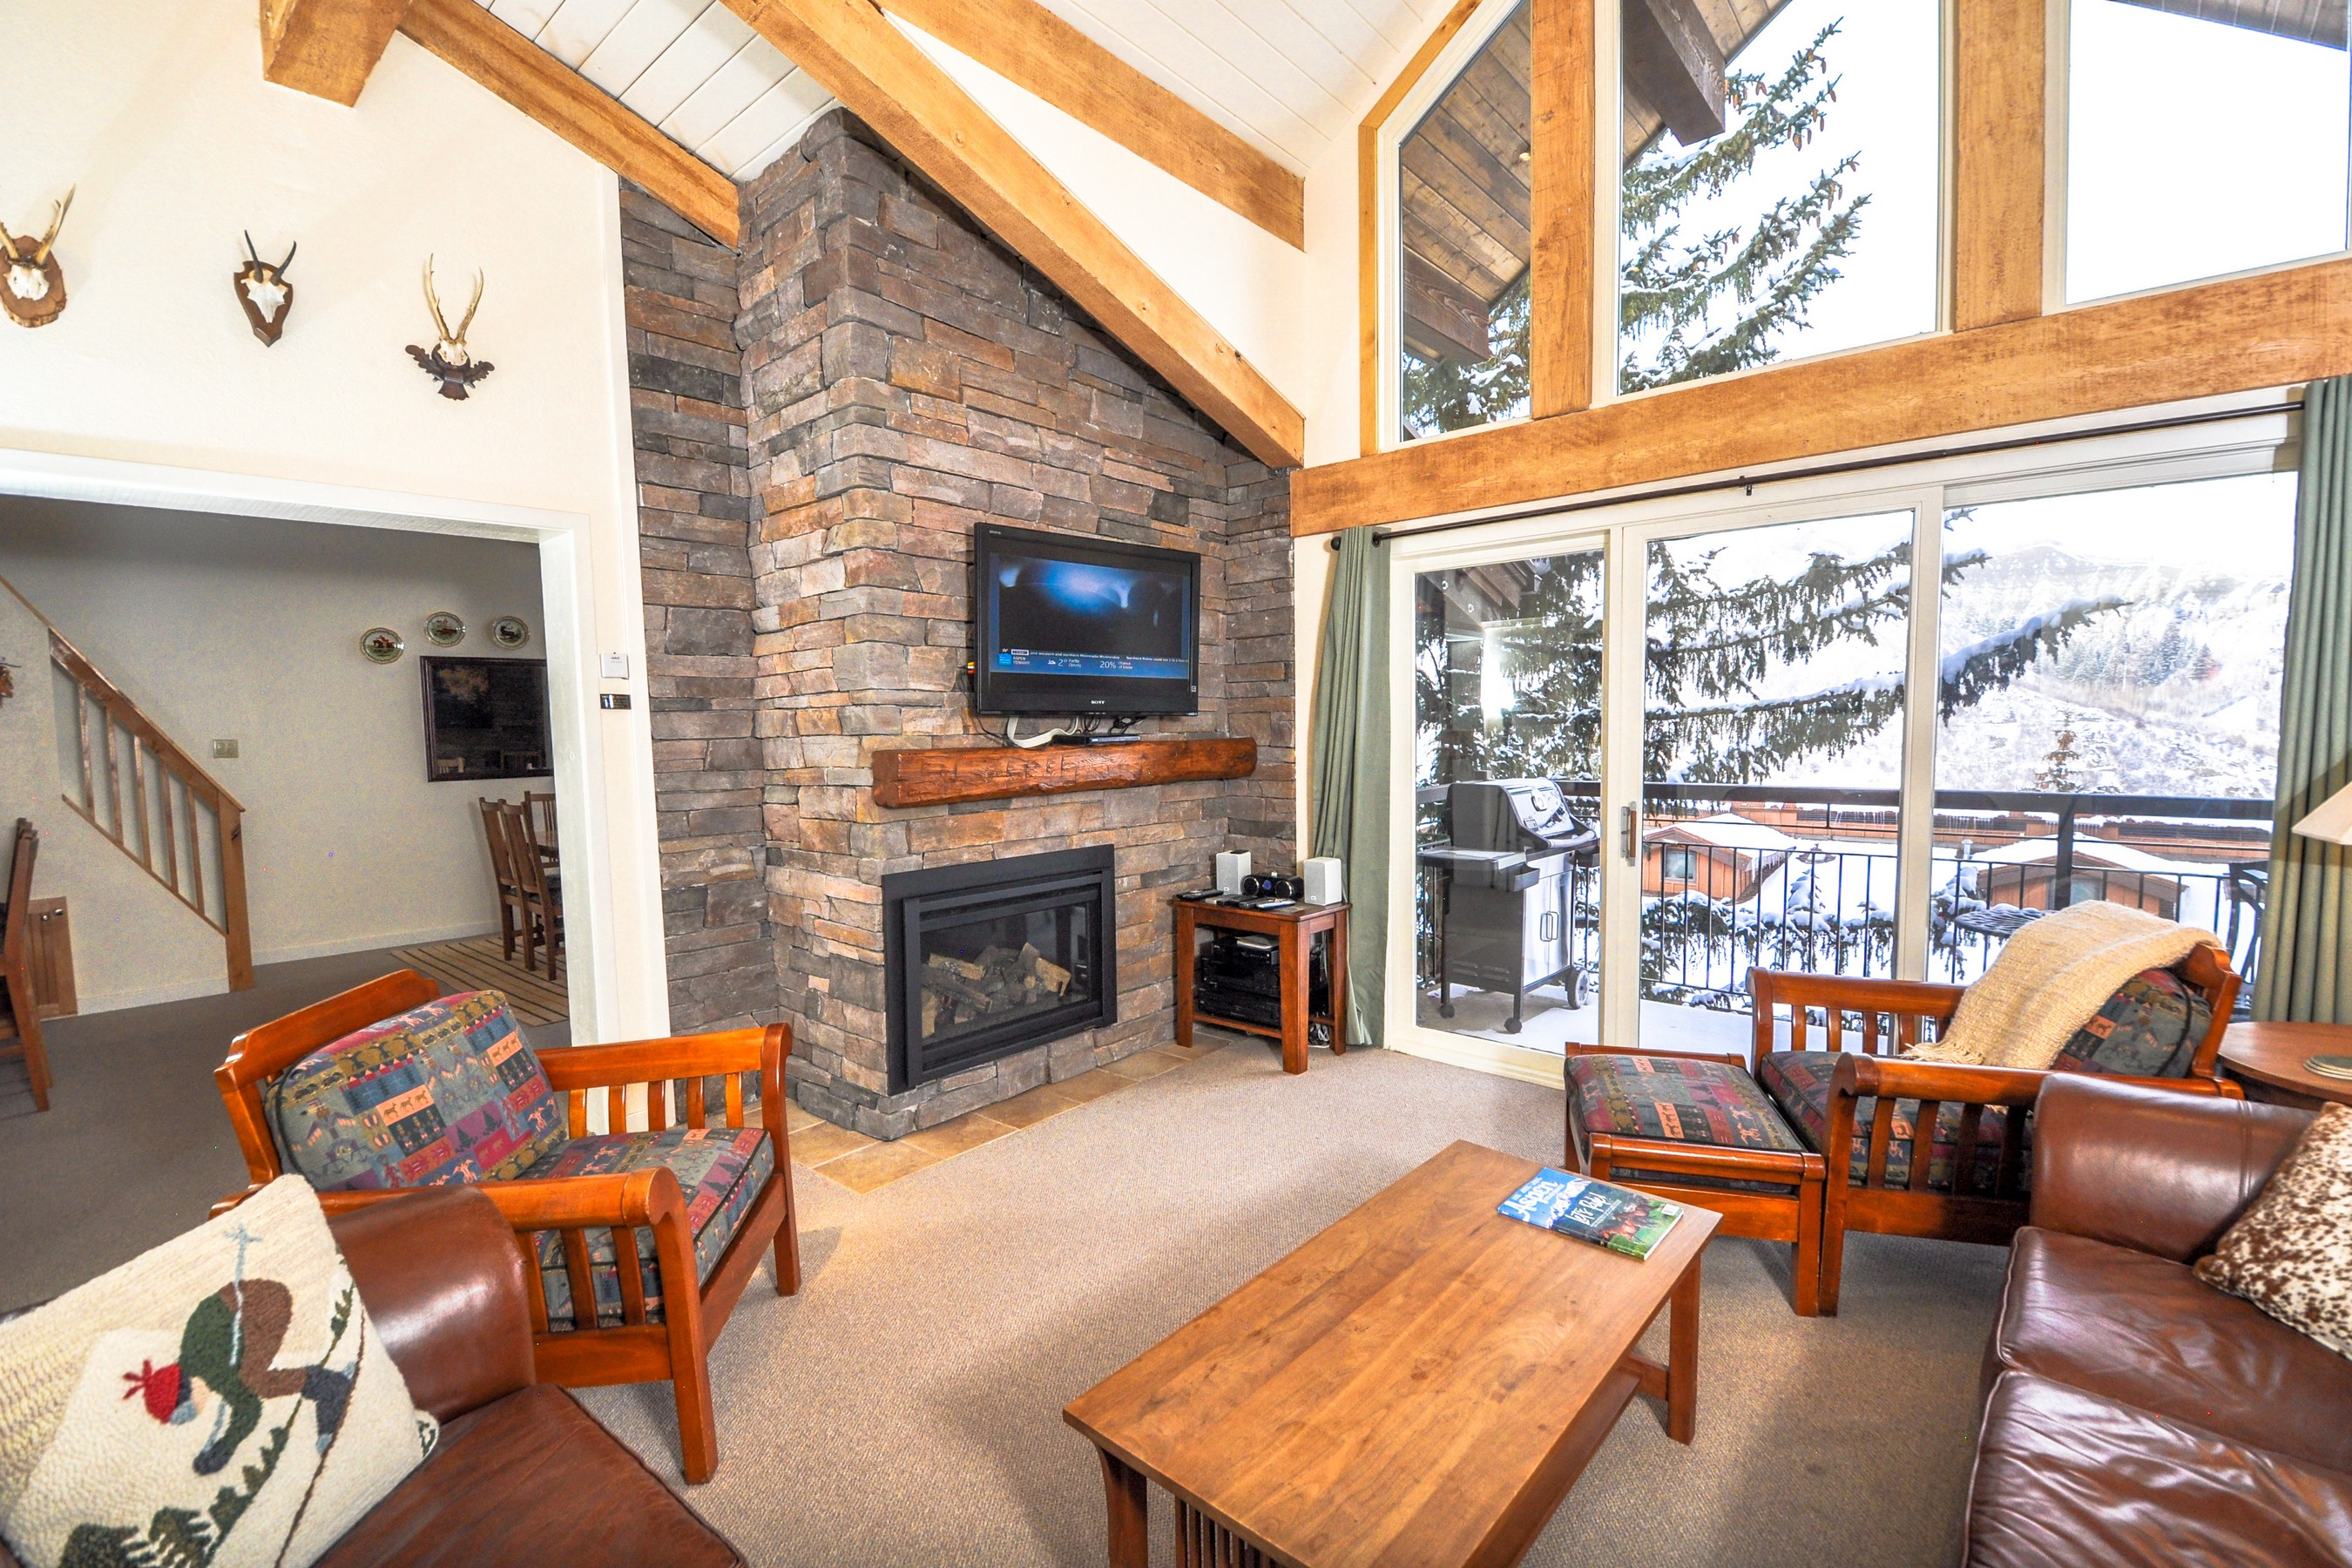 400 Wood Road, Unit 3307 Snowmass Village Photo 1